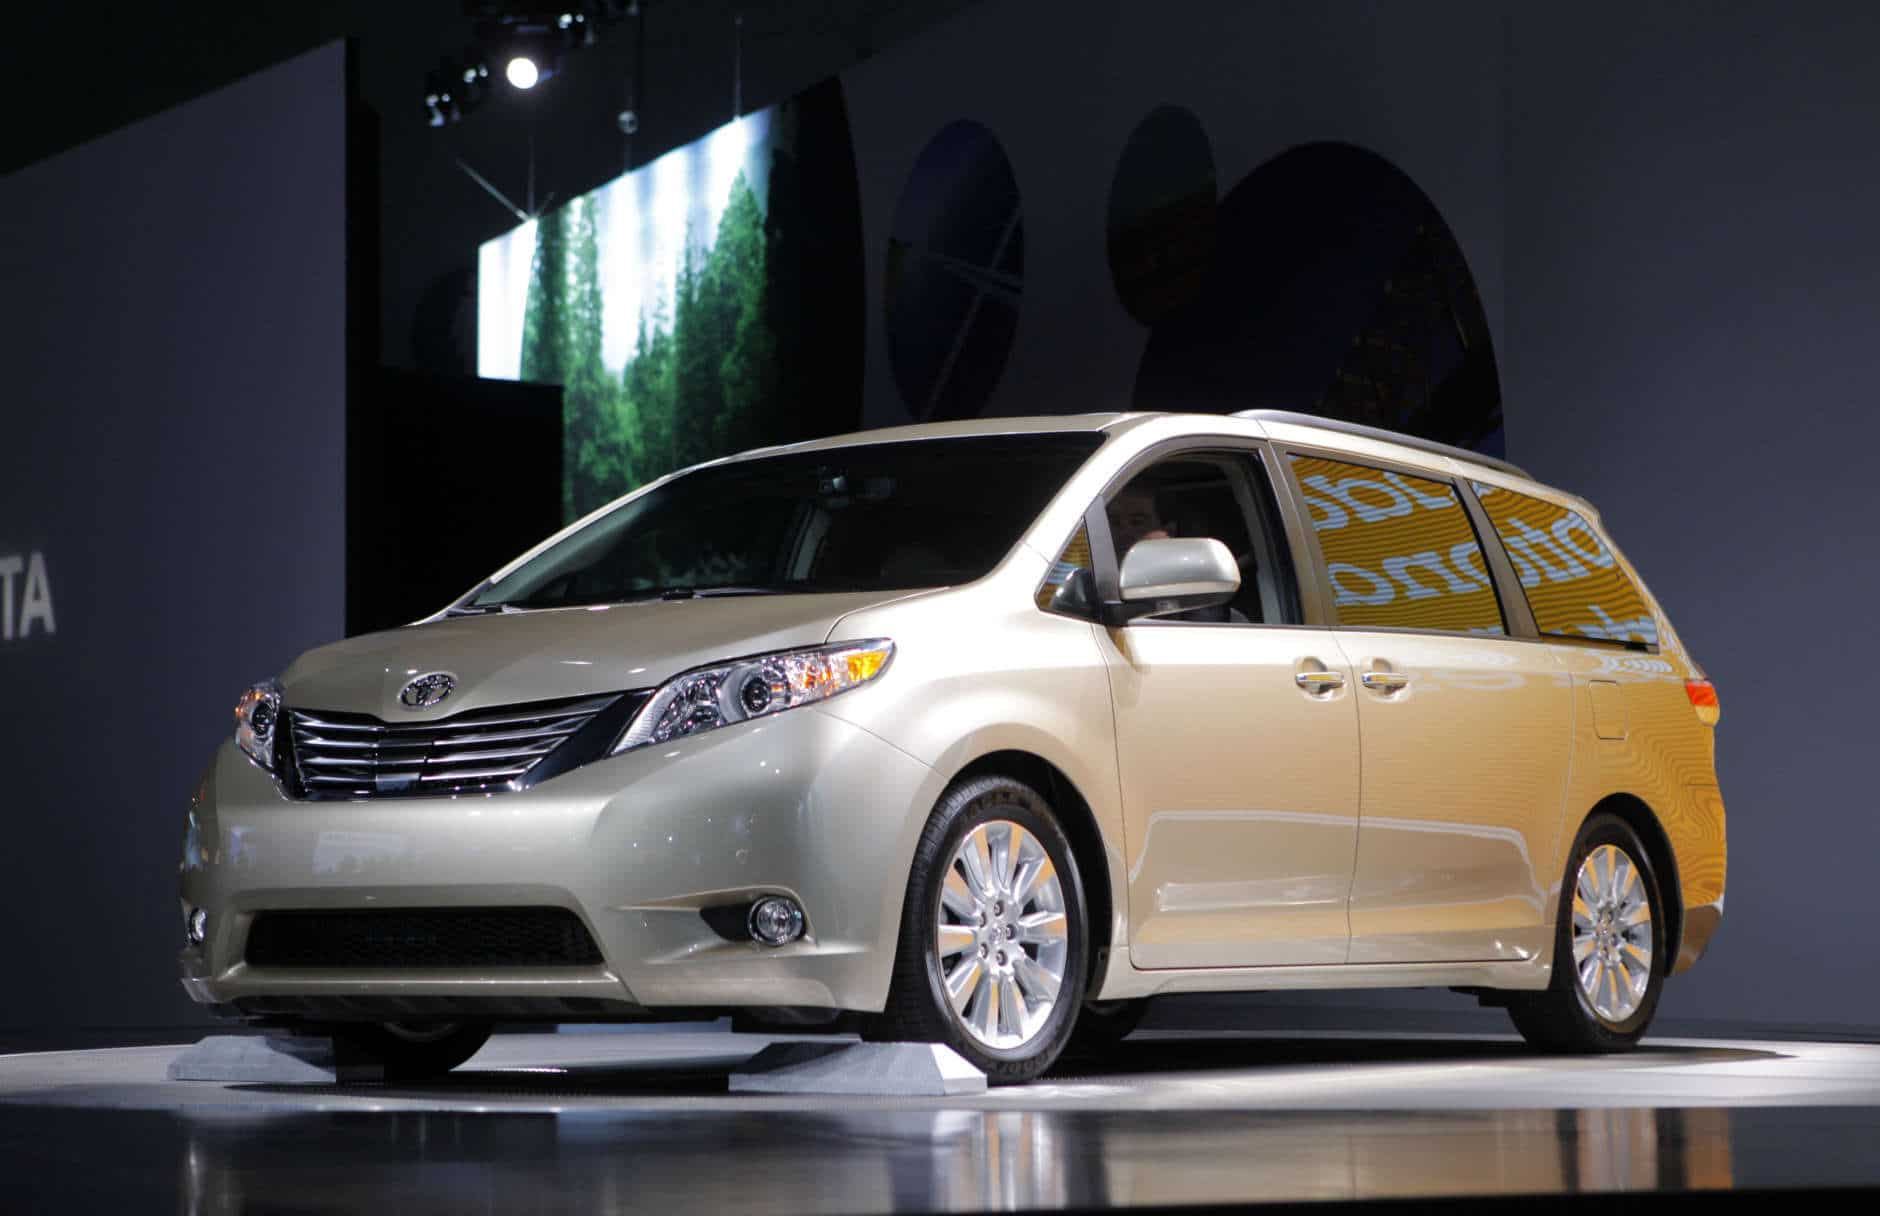 The 2011 Toyota Sienna debuts at the Los Angeles Auto Show in Los Angeles,  Wednesday, Dec. 2, 2009. (AP Photo/Jae C. Hong)